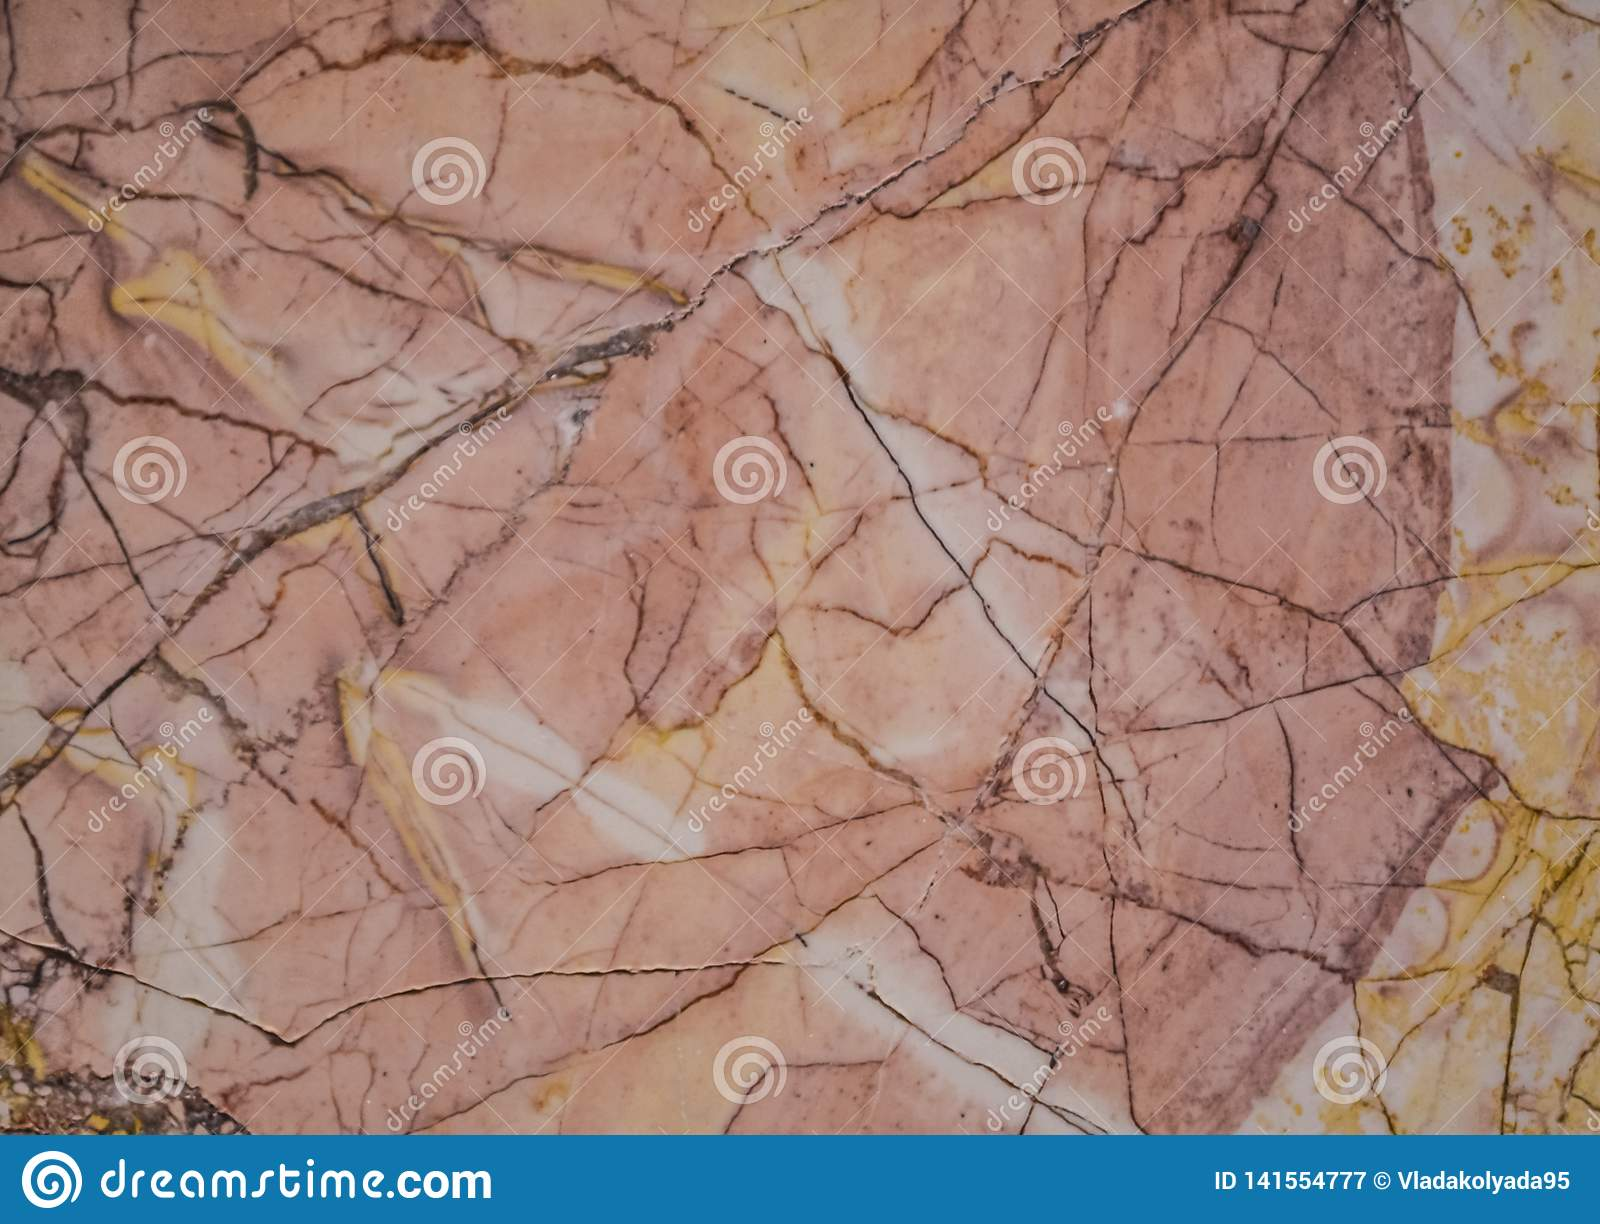 Abstract background or texture from a stone in a section, a pink and gray shade with spots, cracks and stains. Solid material.